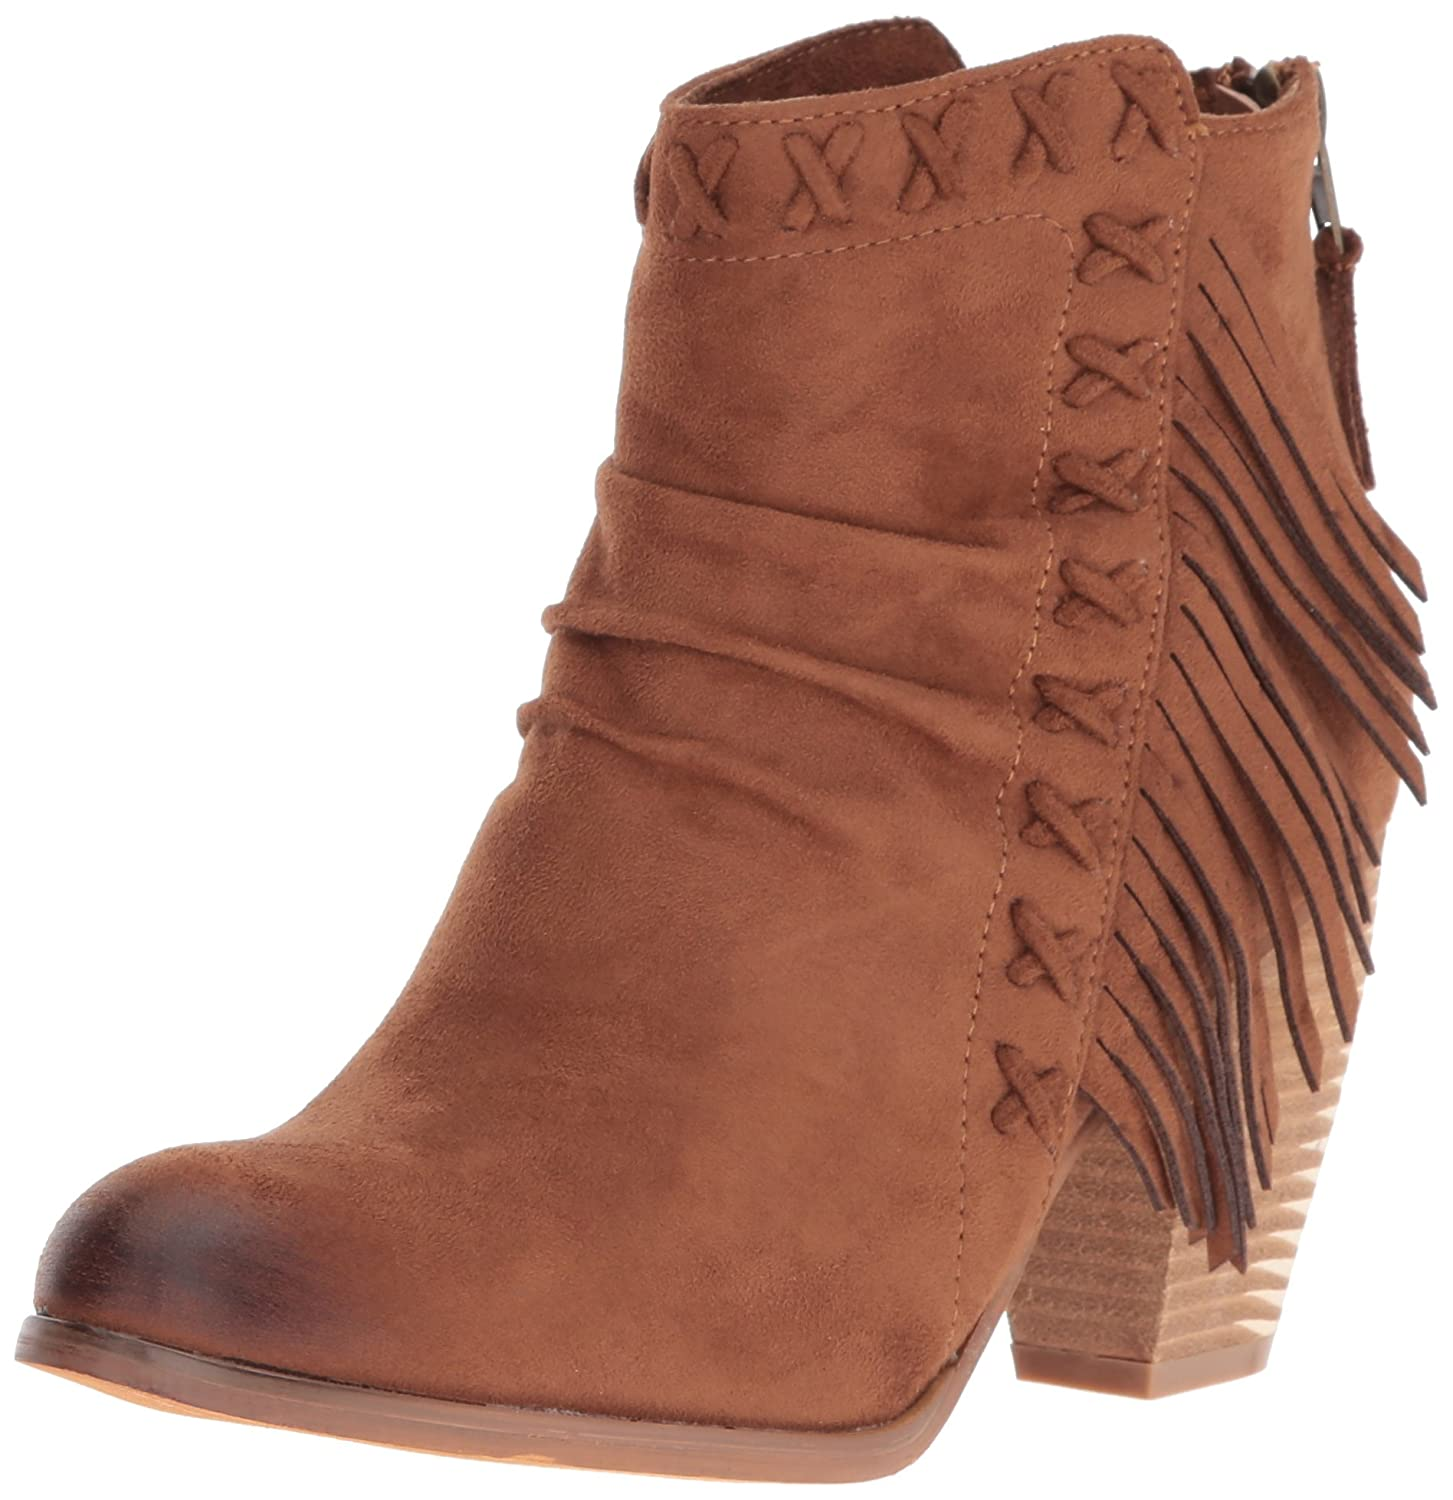 Not Rated Women's Angie Boot B01GKW0A9M 9.5 B(M) US|Tan